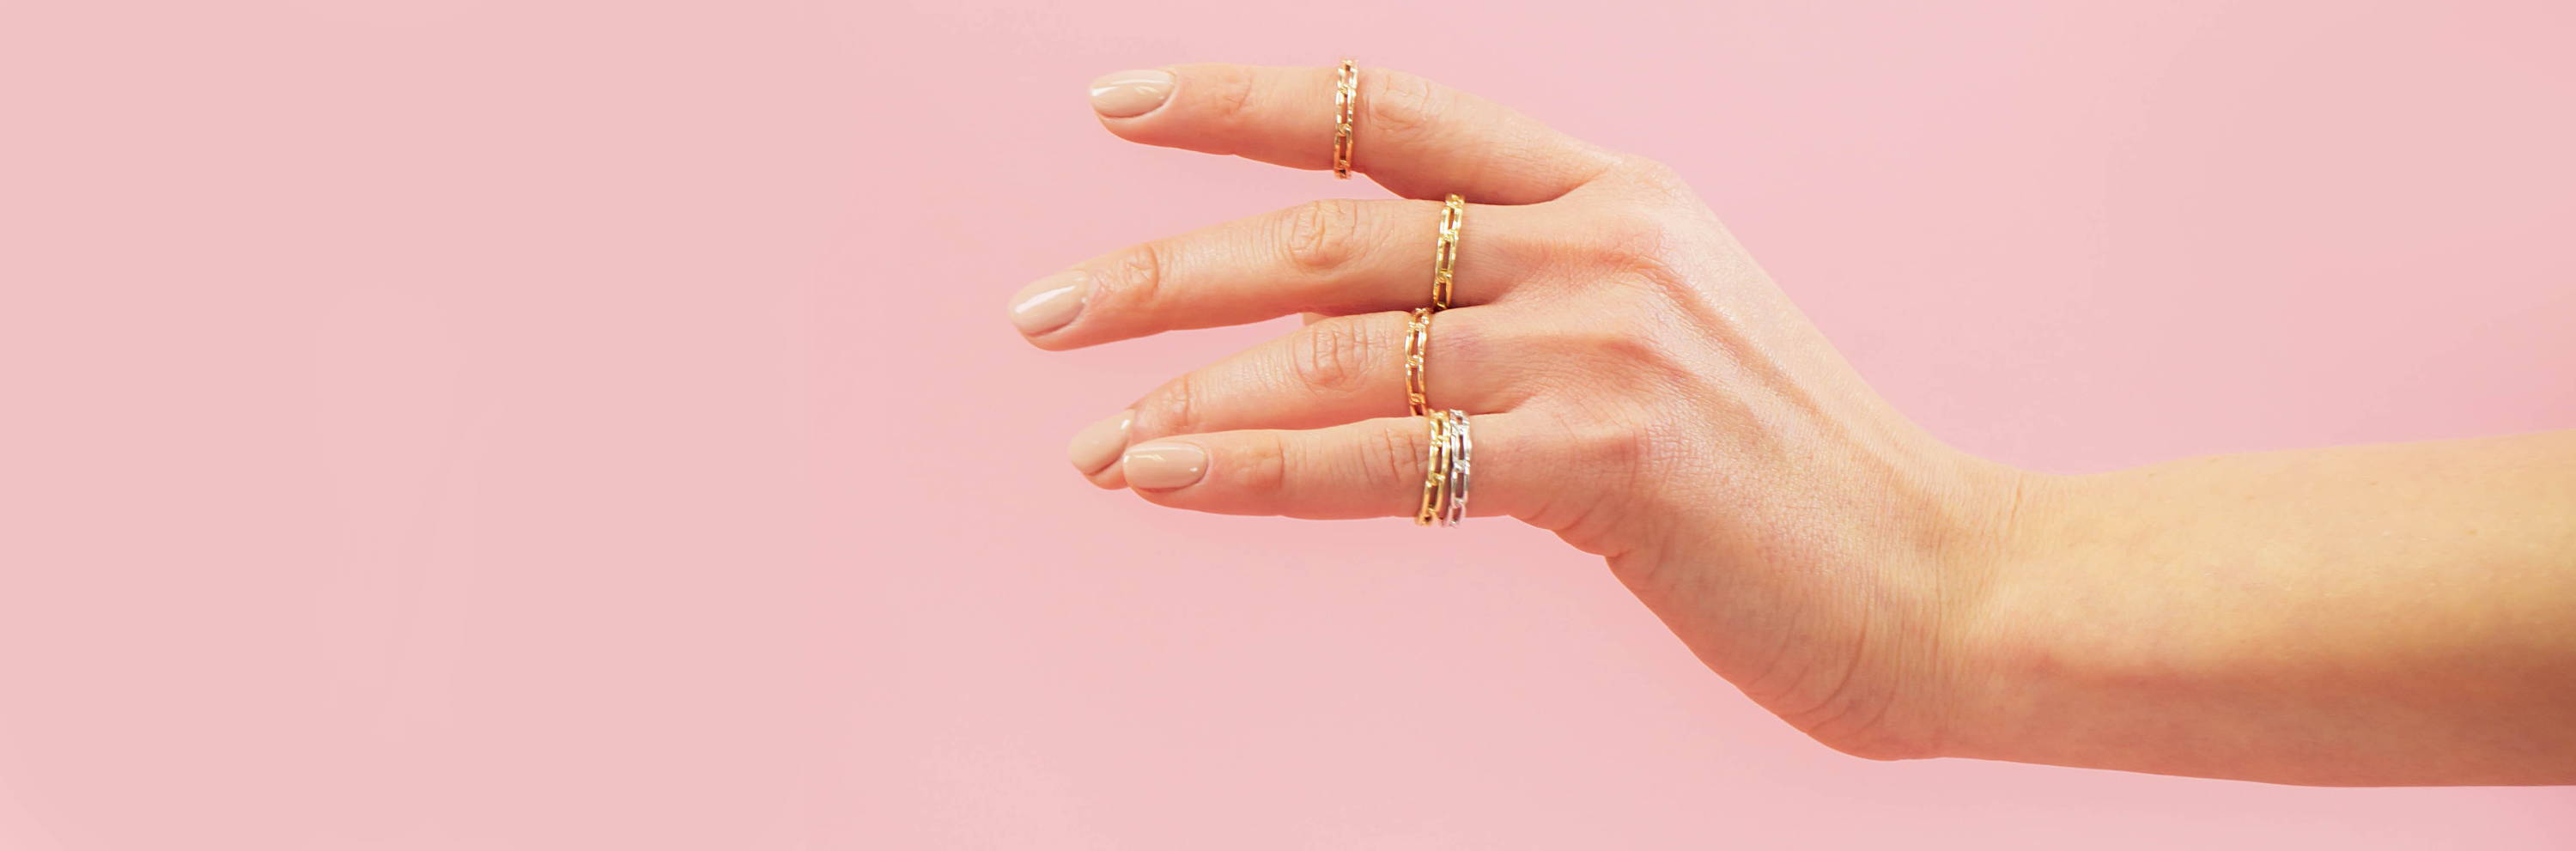 Close up of hand wearing Maya Brenner link rings against a pink background.